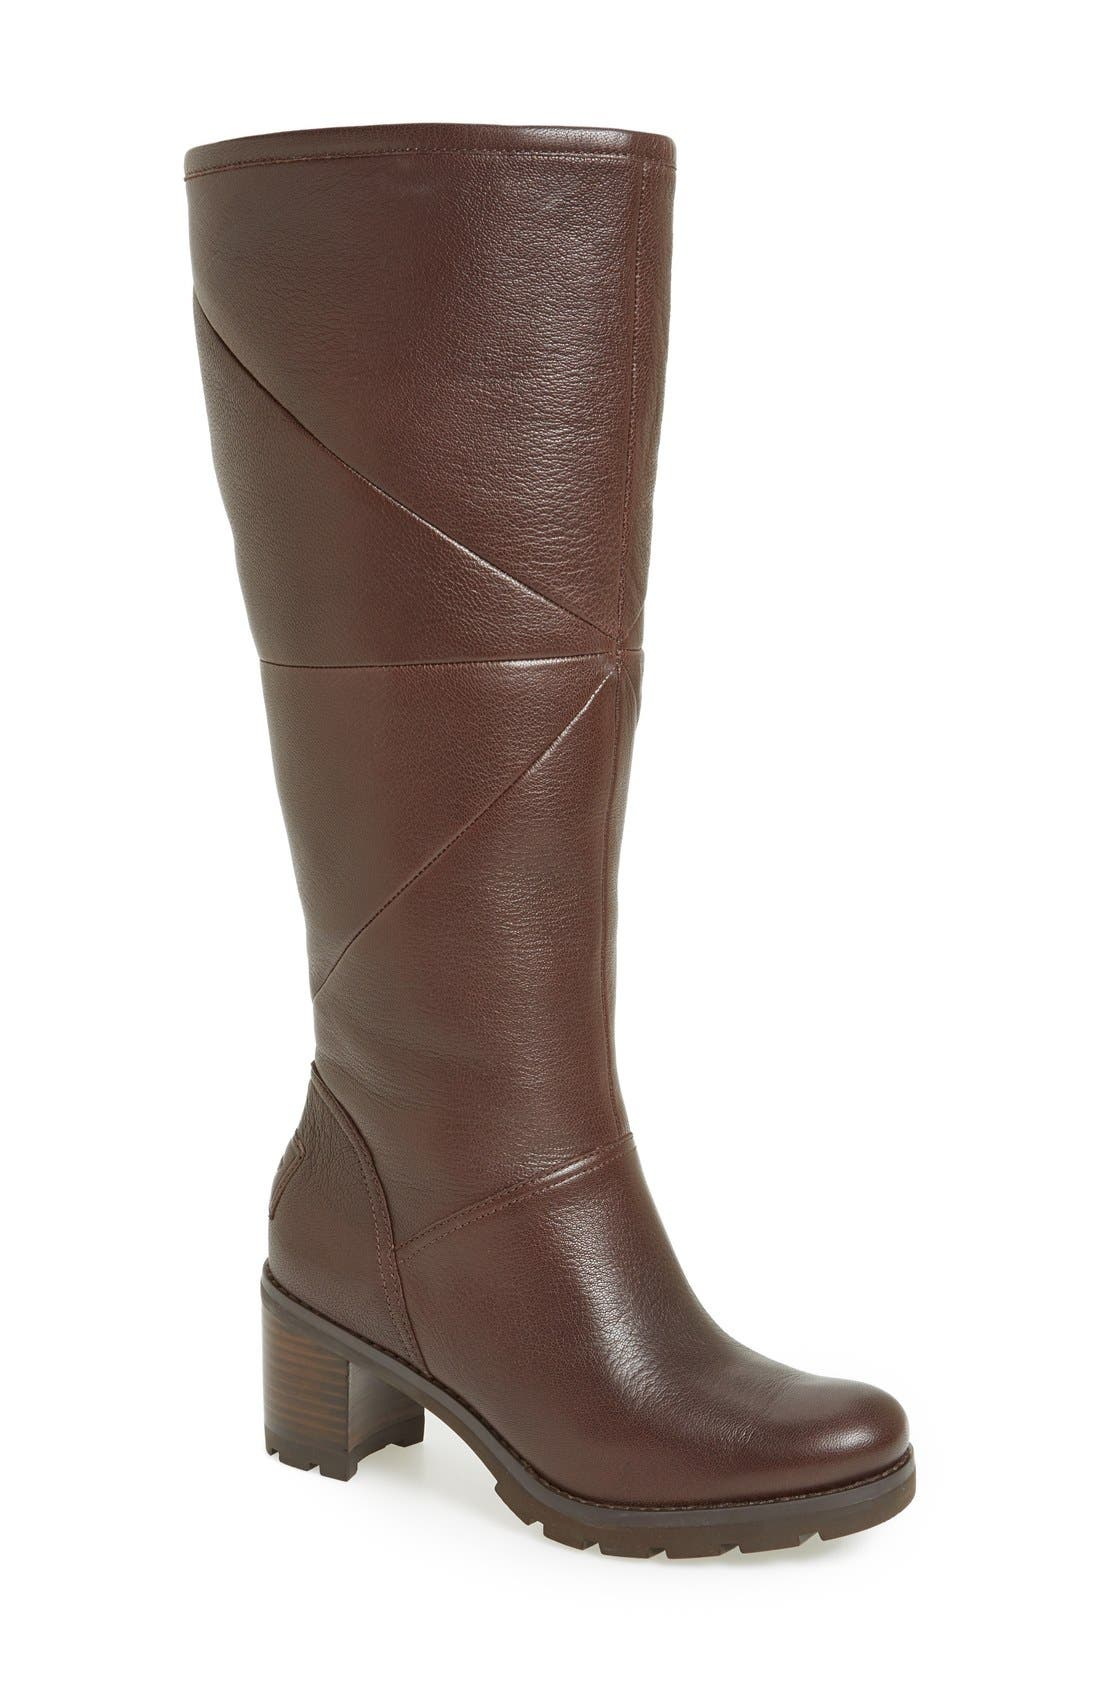 Main Image - UGG® 'Avery' Water Resistant Genuine Shearling Lined Leather Boot (Women)